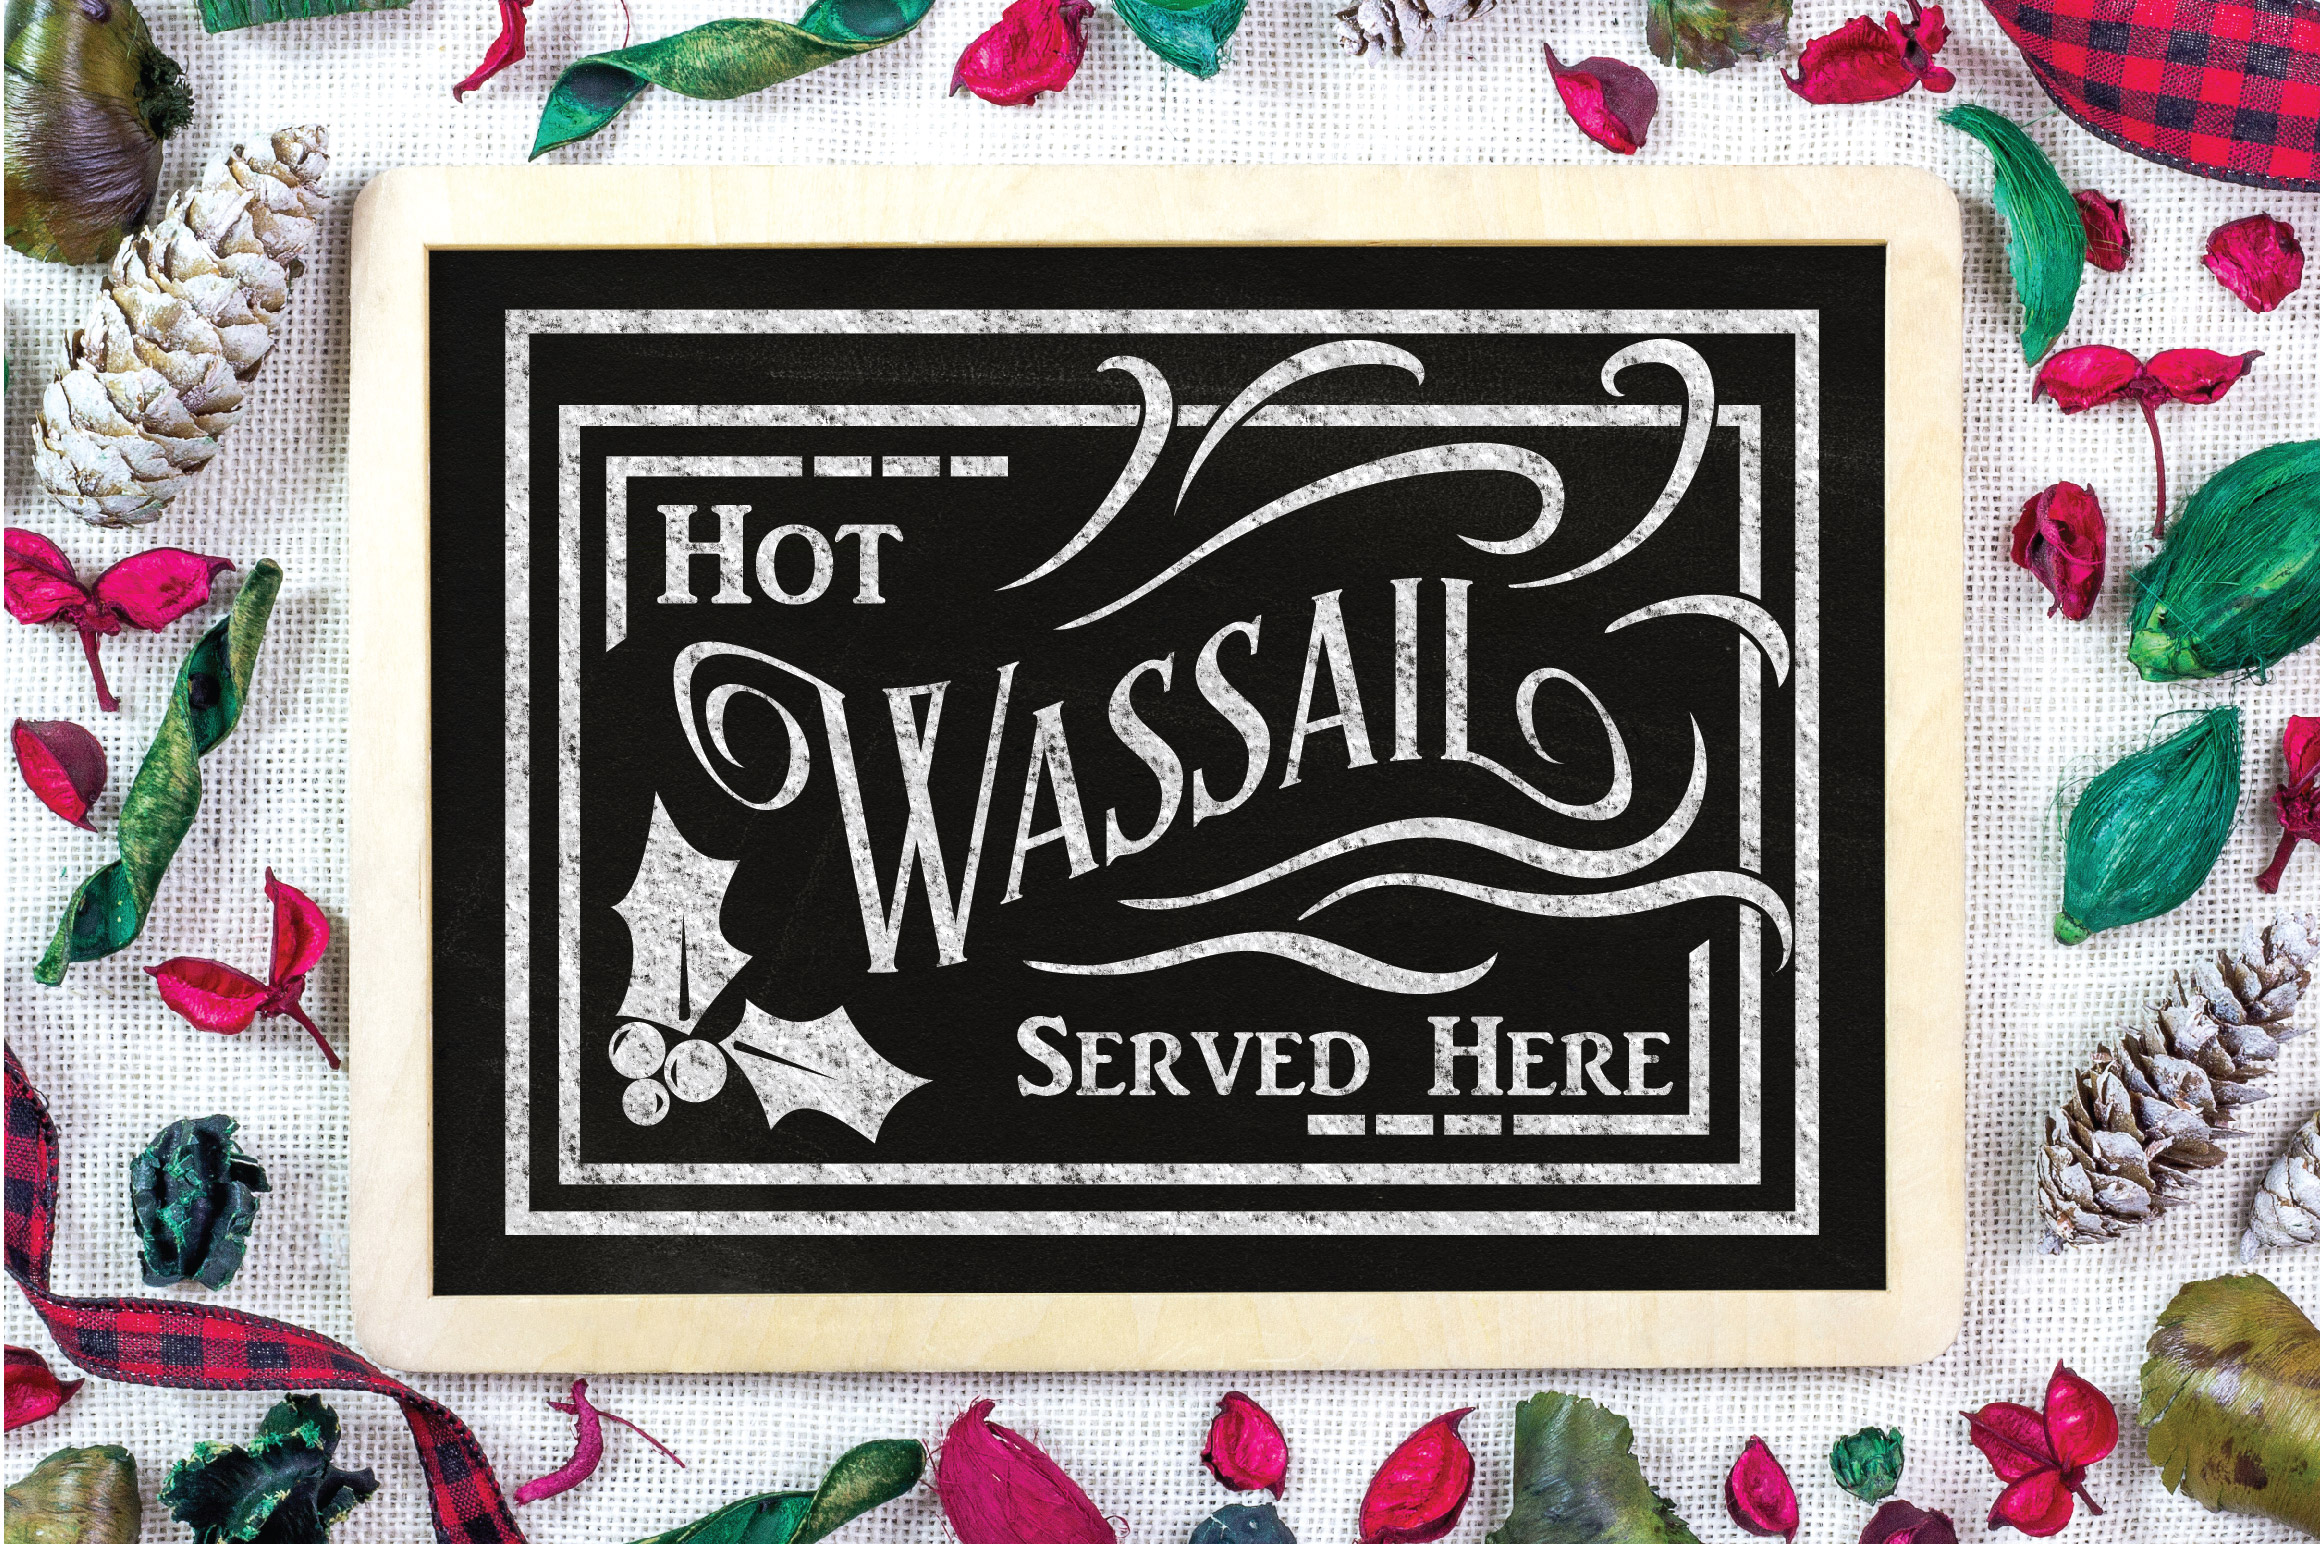 Christmas SVG Cut File - Hot Wassail SVG DXF PNG EPS JPG example image 2